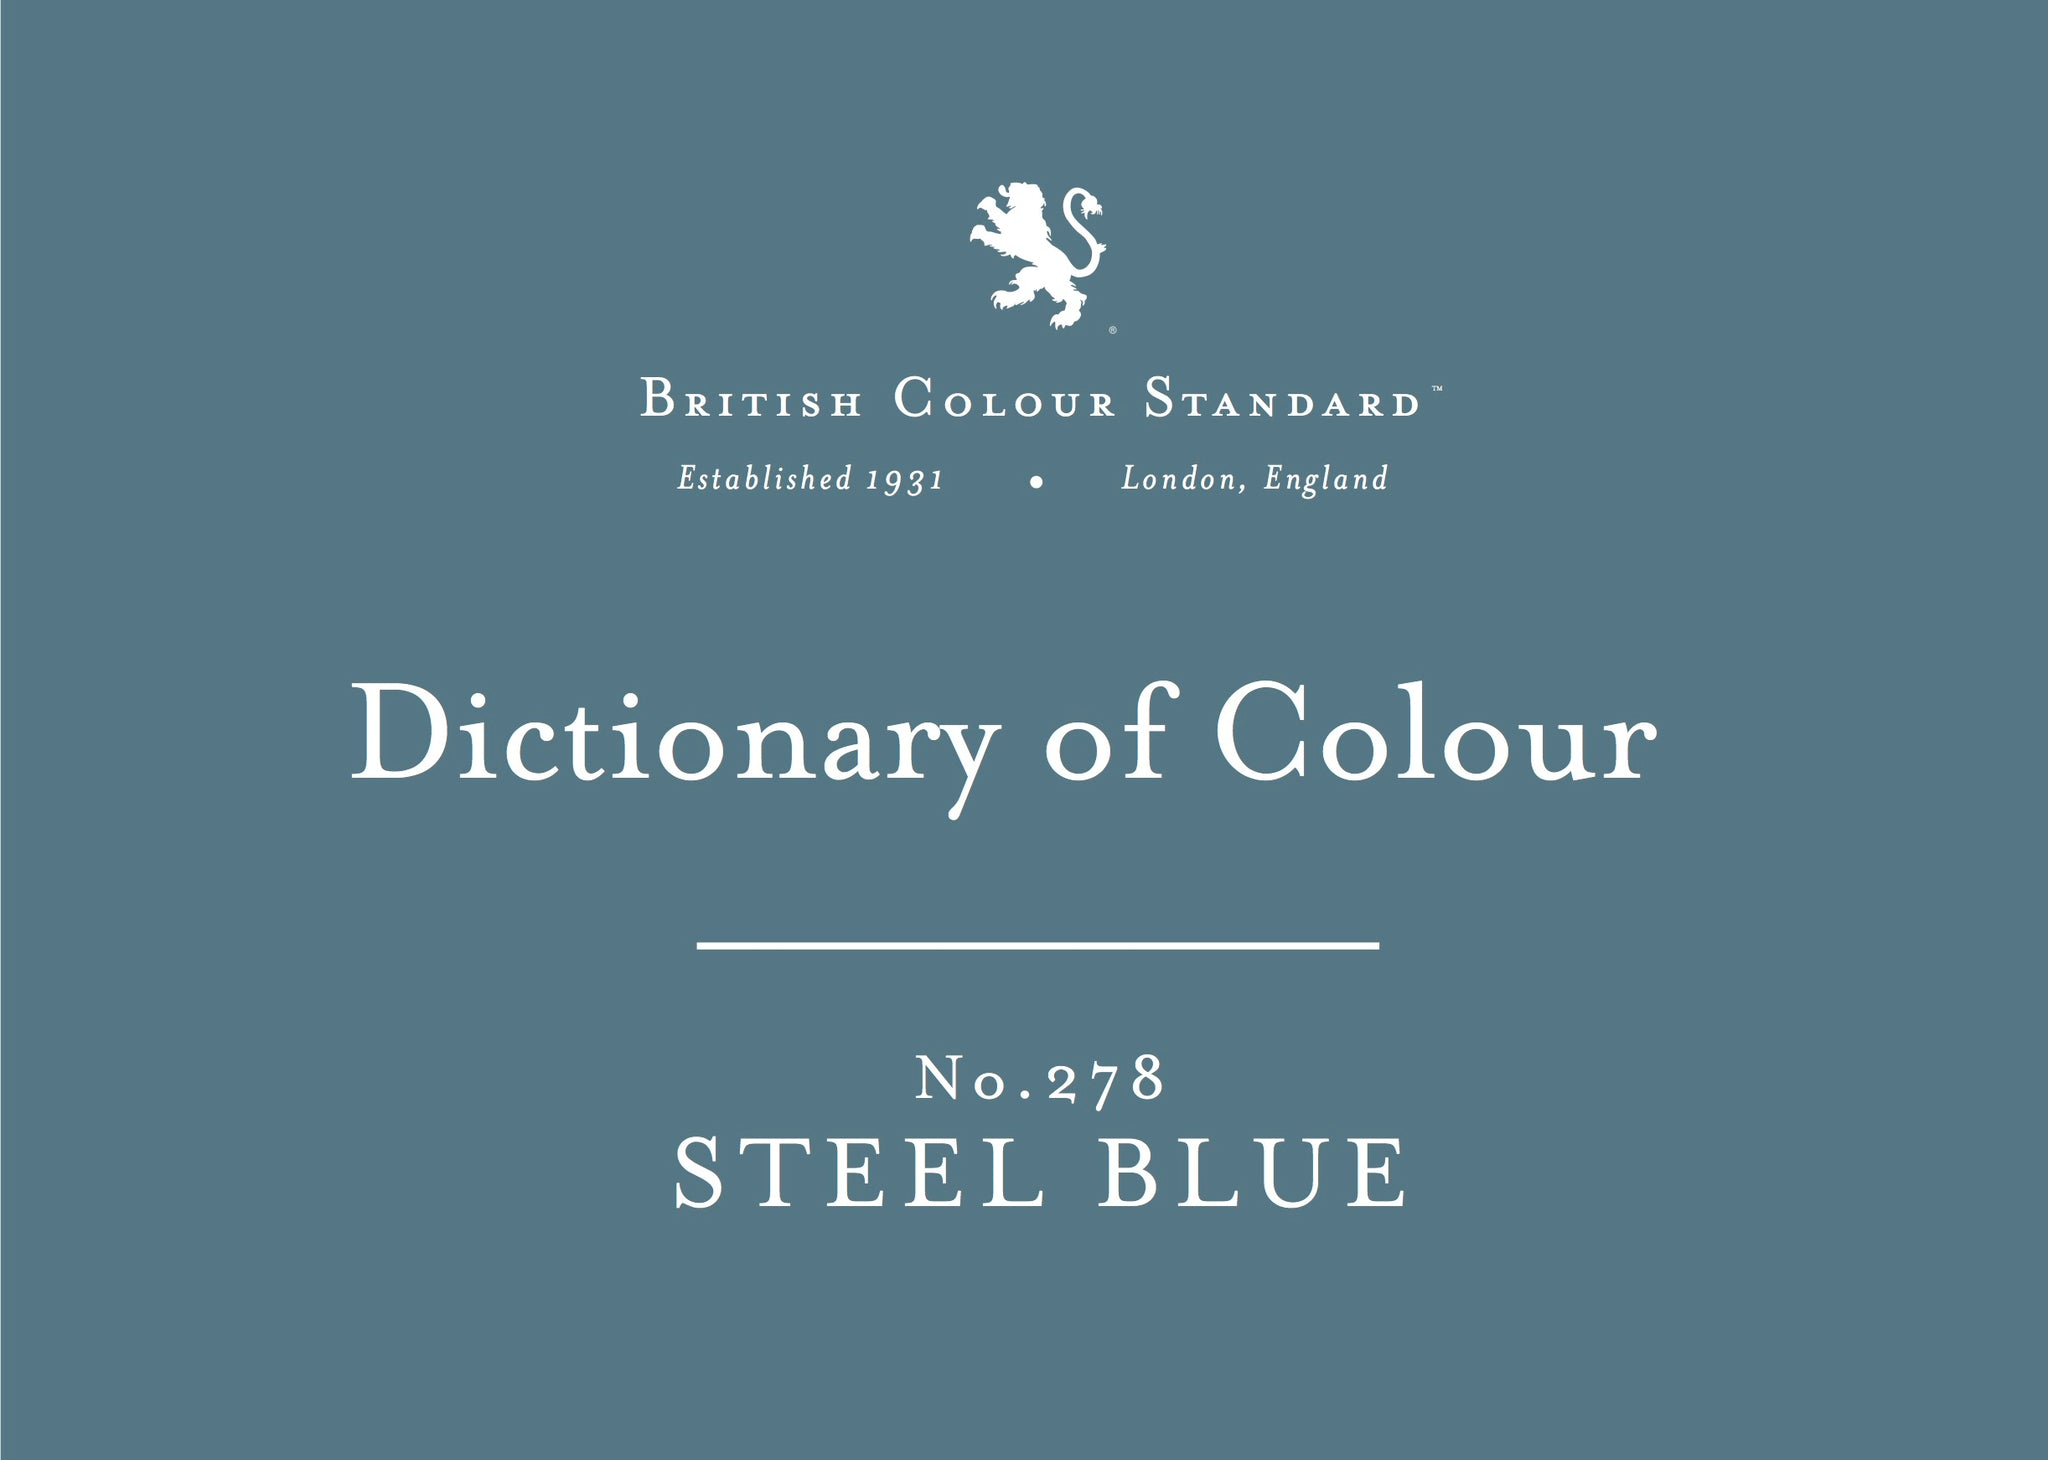 BRITISH COLOUR STANDARD - Steel Blue No. 278